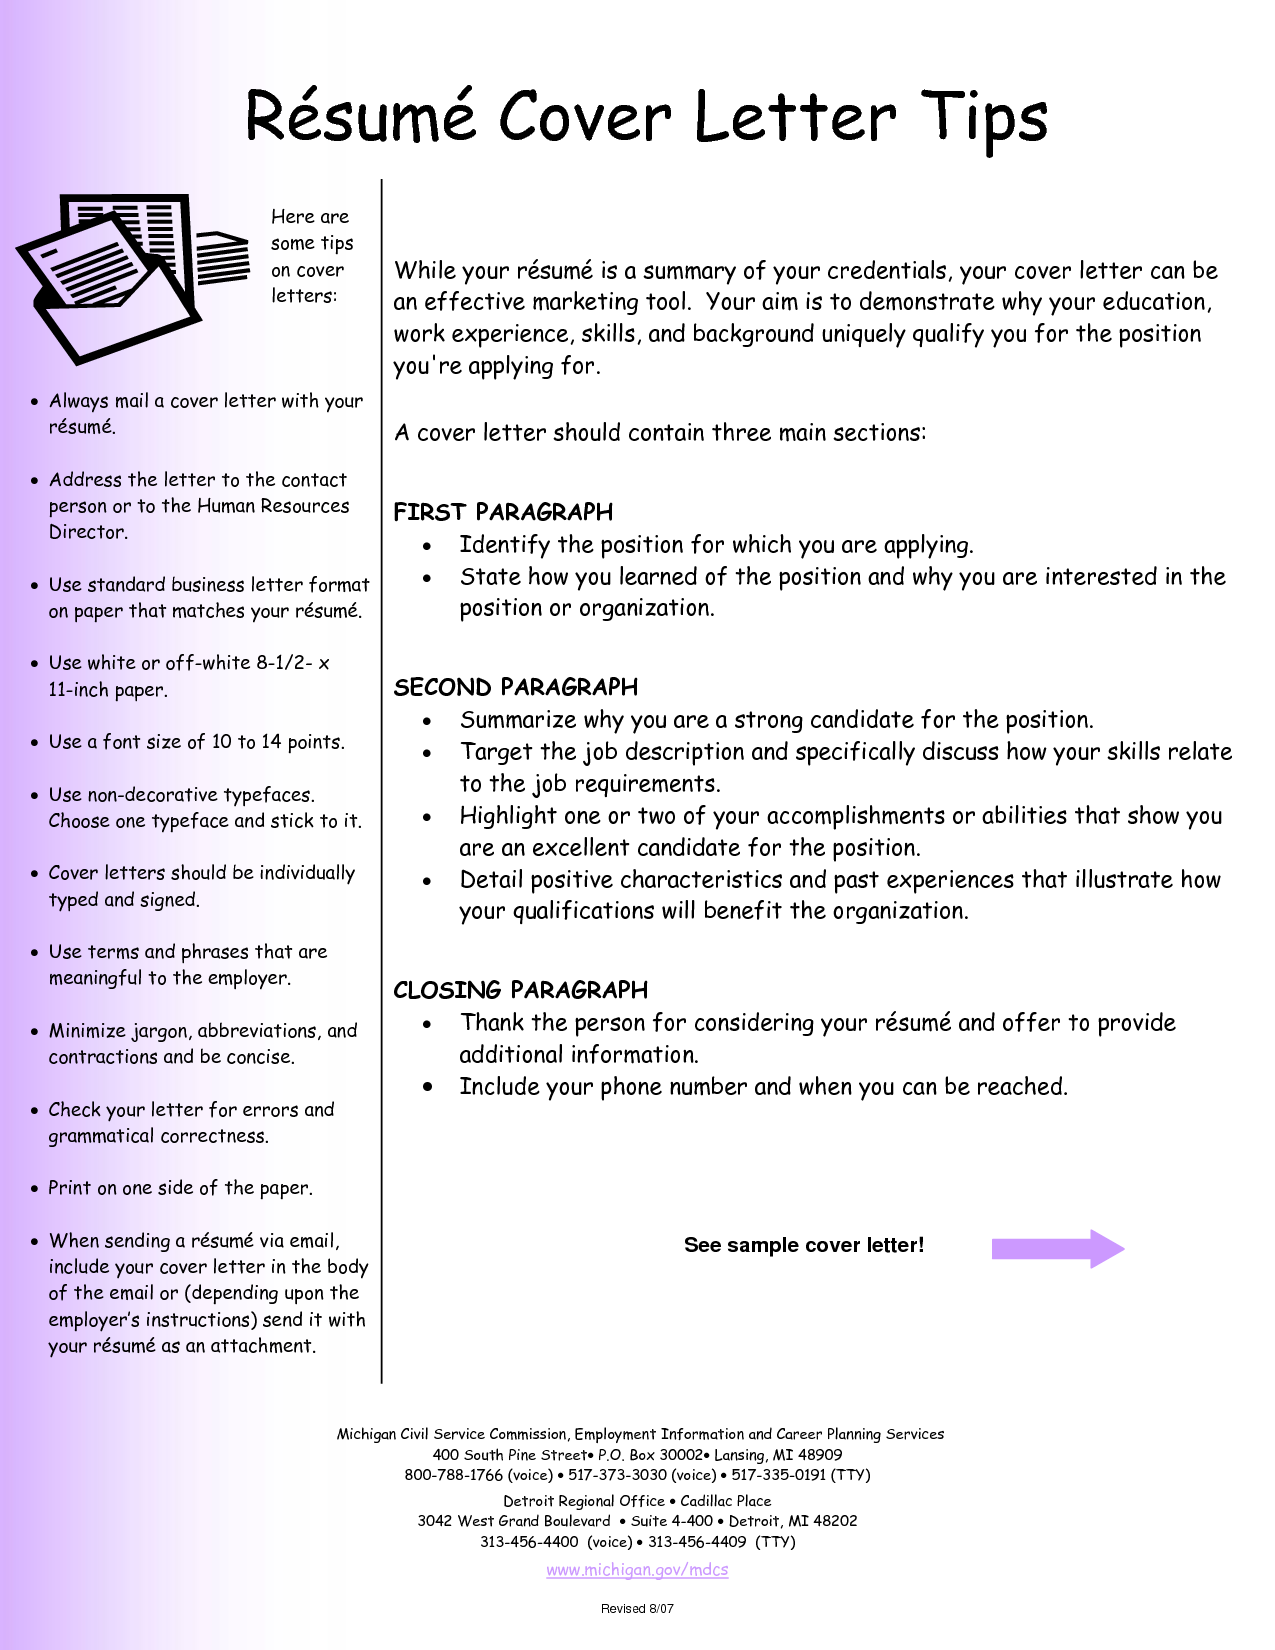 how to address a job application resume